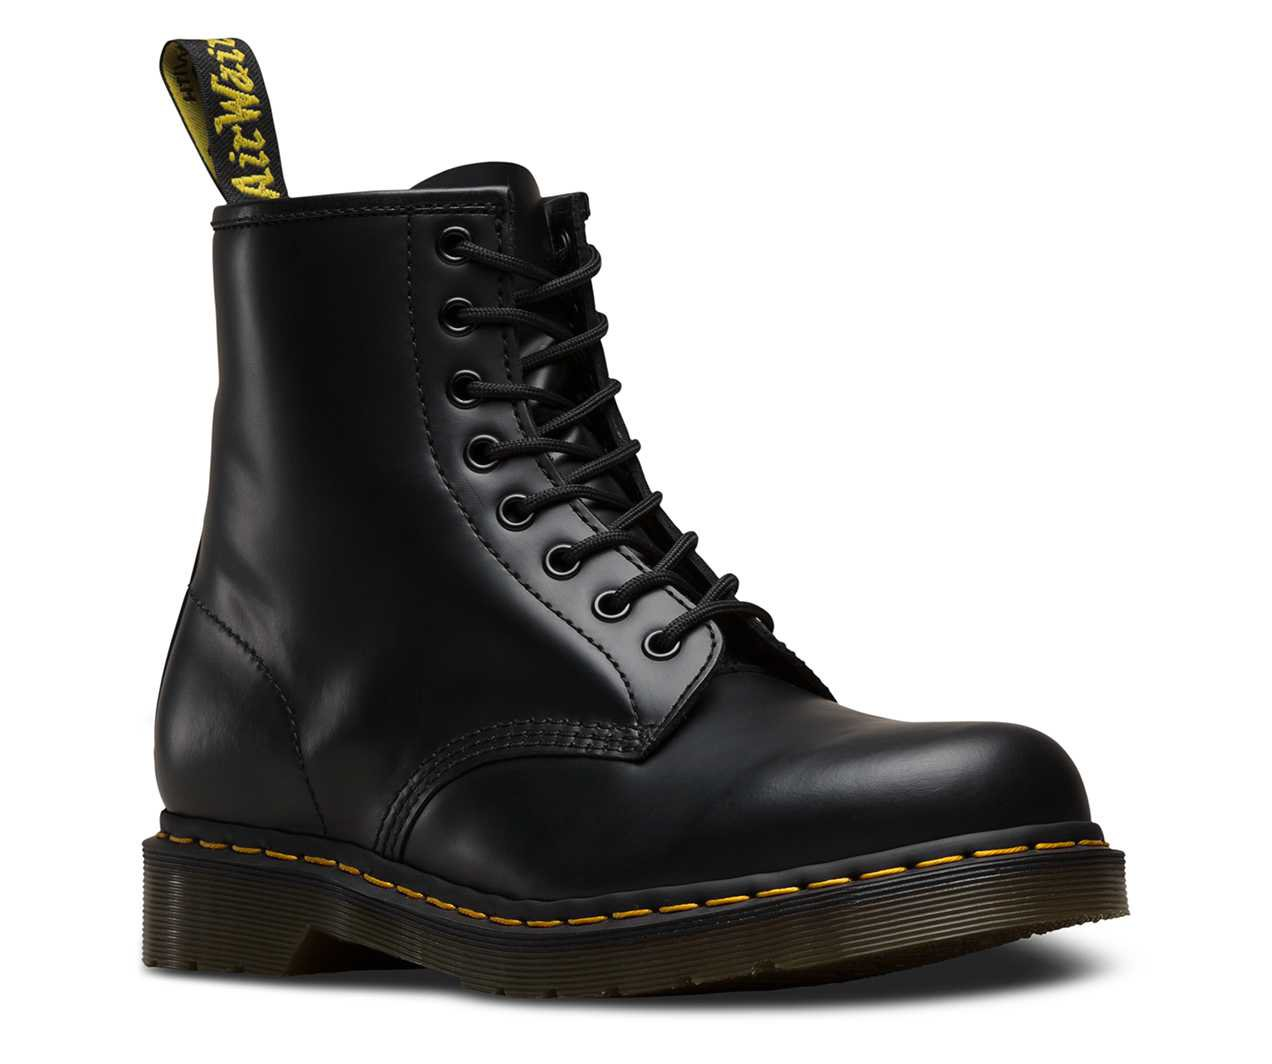 1460 SMOOTH | 1460 8 Eye Boots | Official Dr. Martens Store